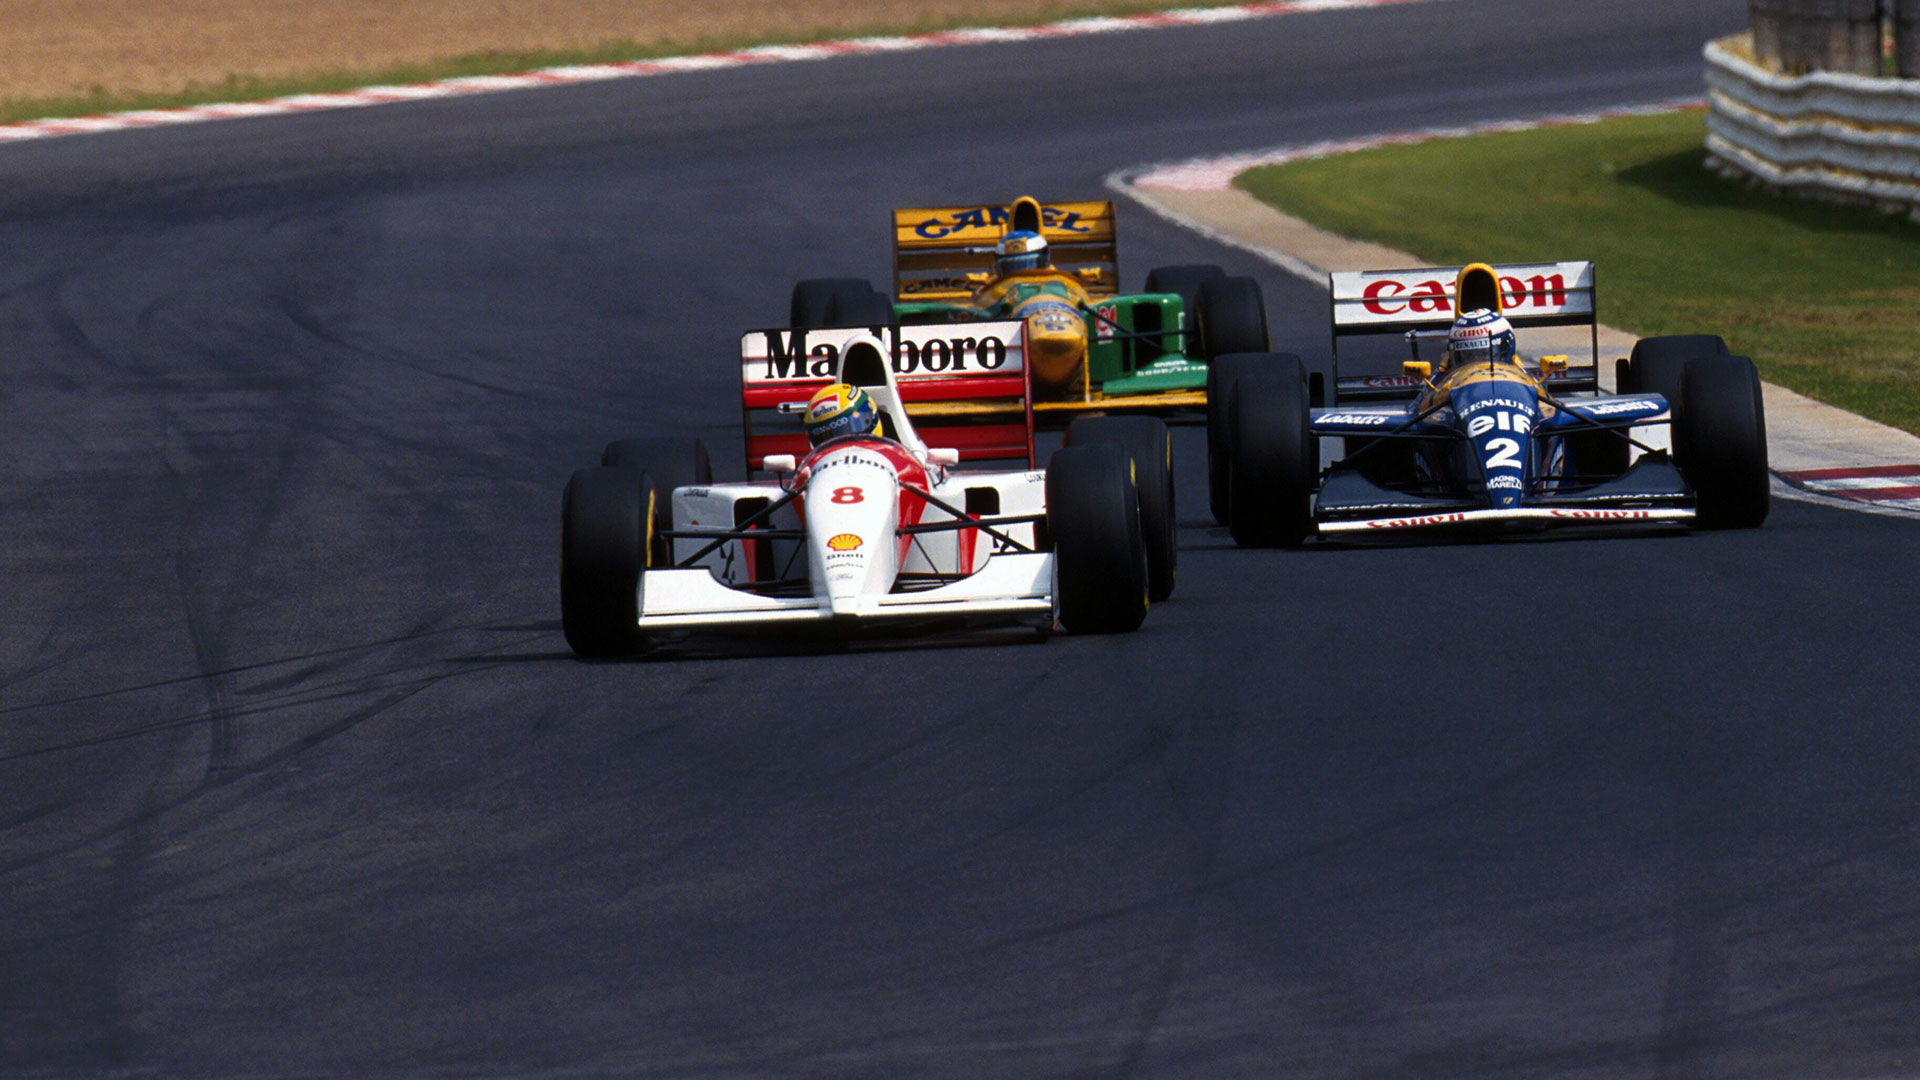 Ayrton Senna, Alain Prost and Michael Schumacher racing each other.